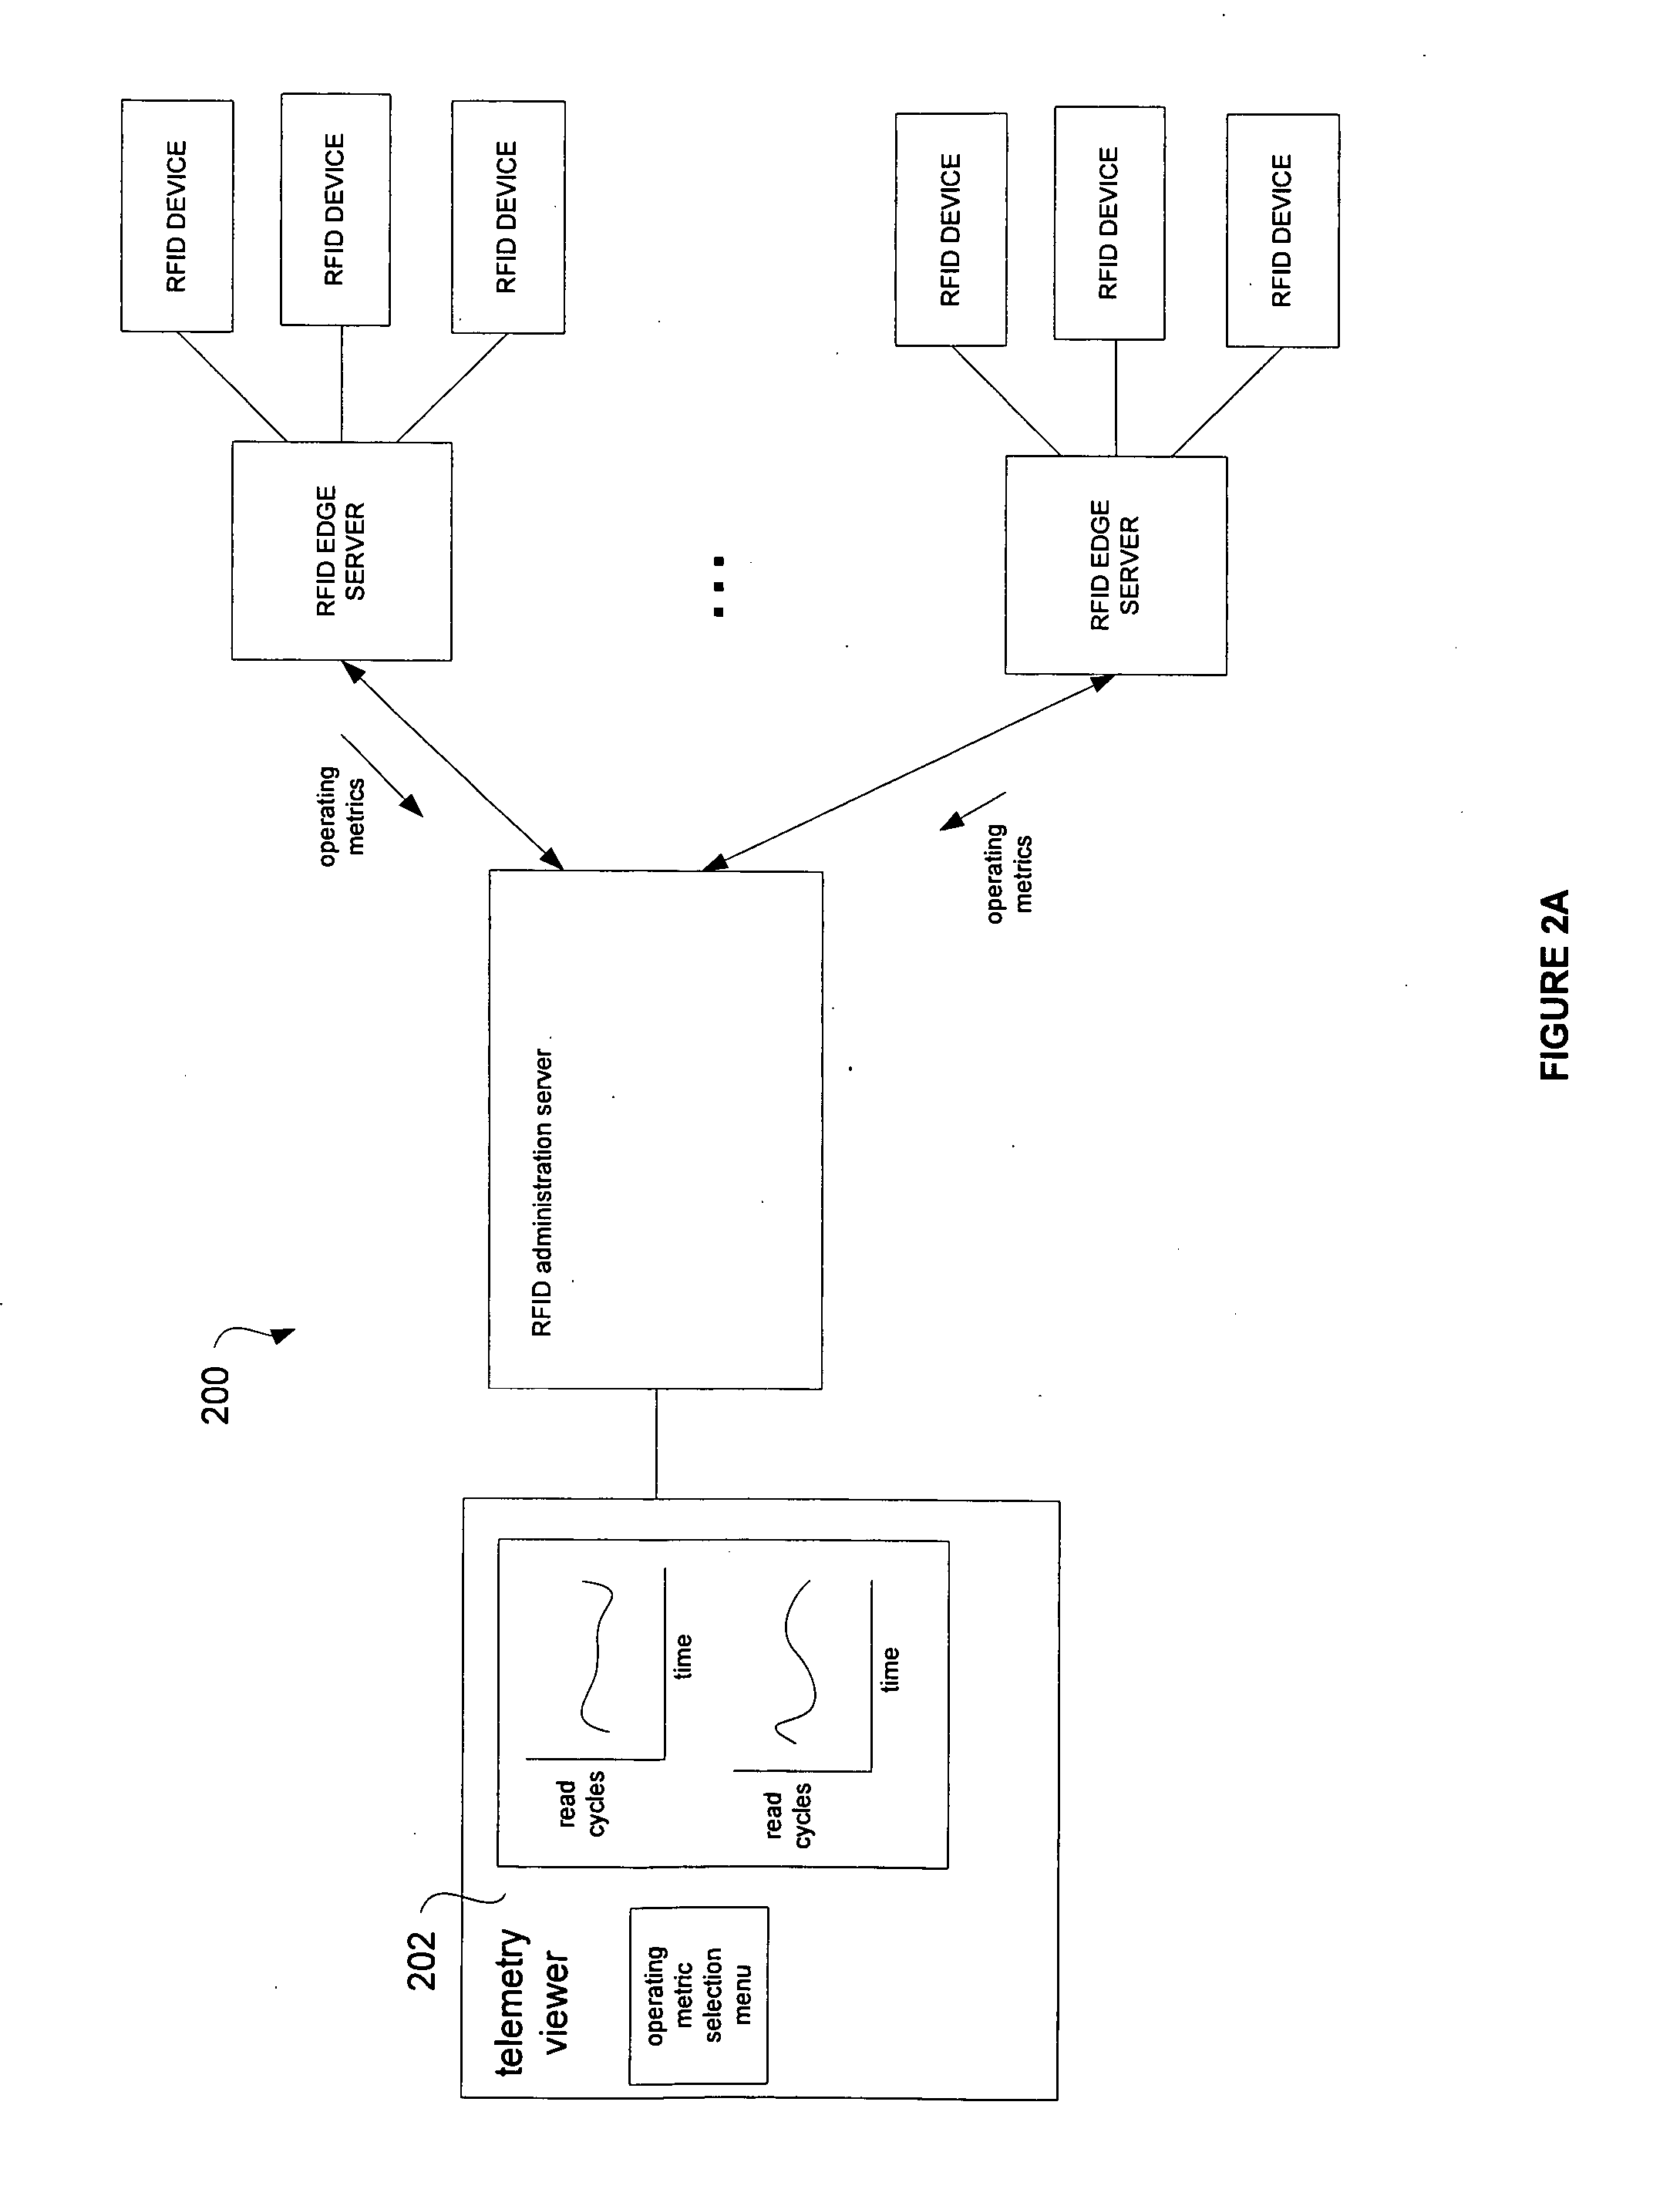 Patent US20070228165 - Centralized RFID Monitoring